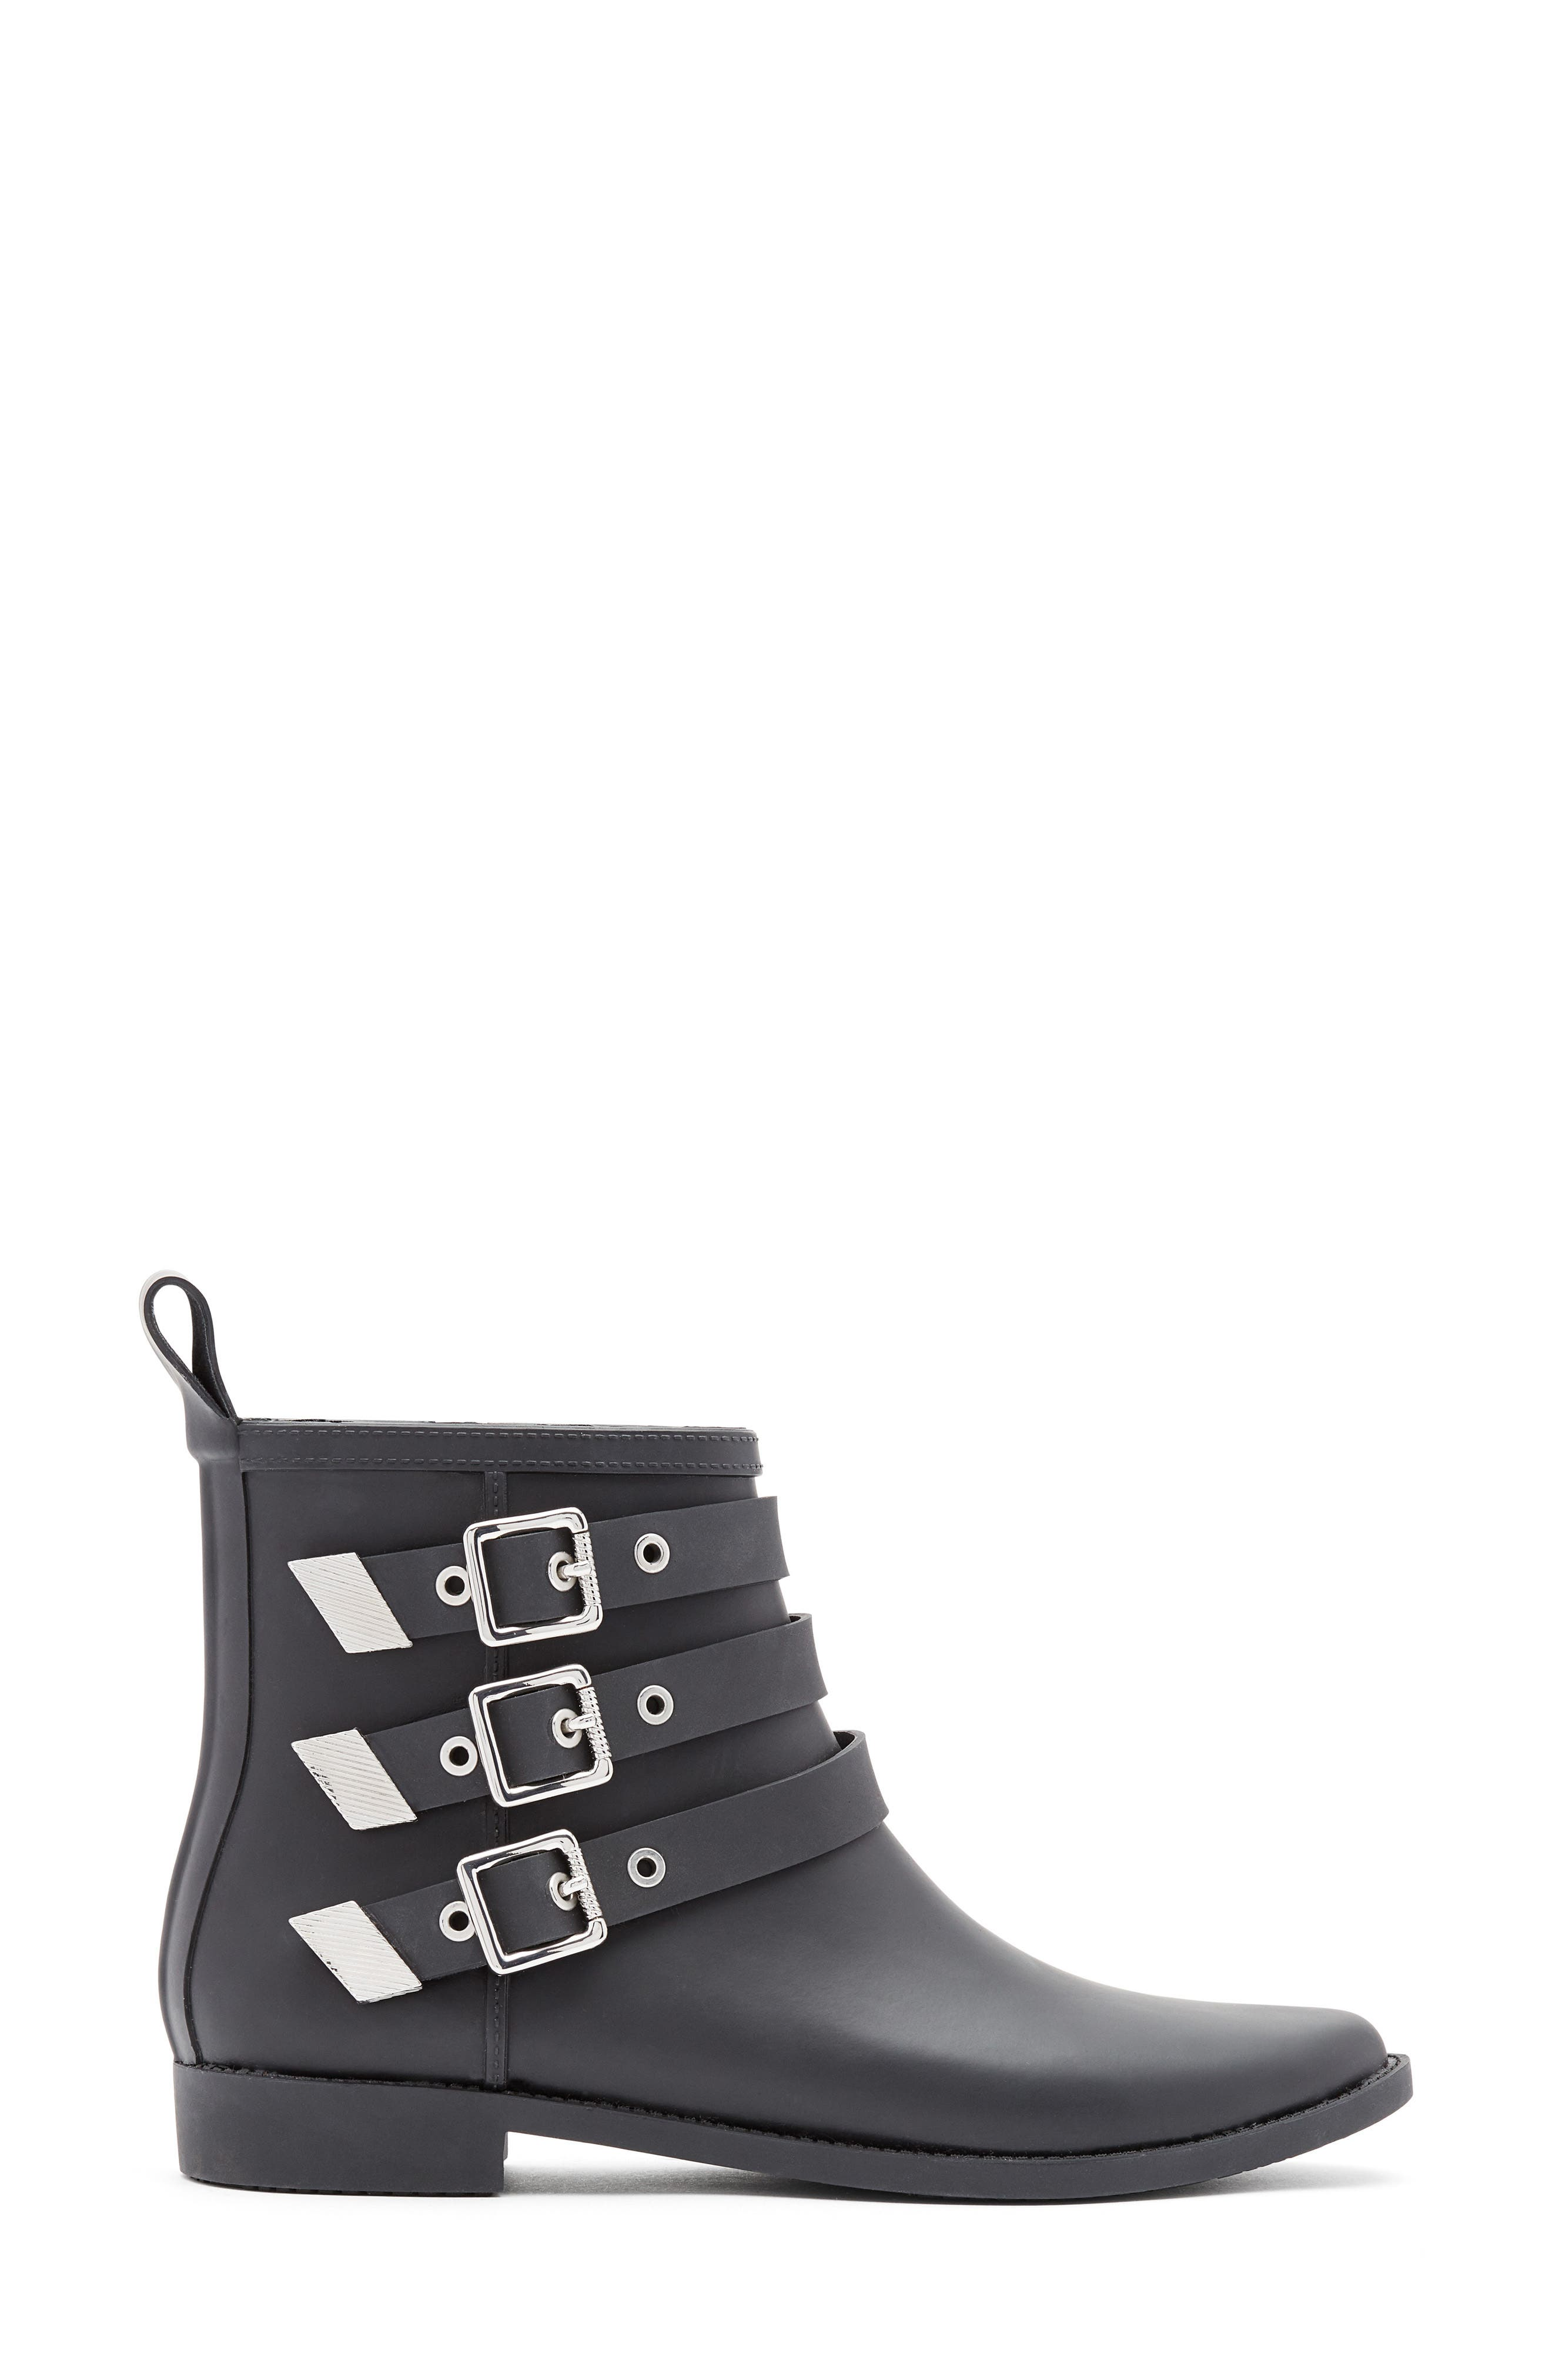 Nash Buckle Strap Rain Bootie,                             Alternate thumbnail 2, color,                             Black/ Silver